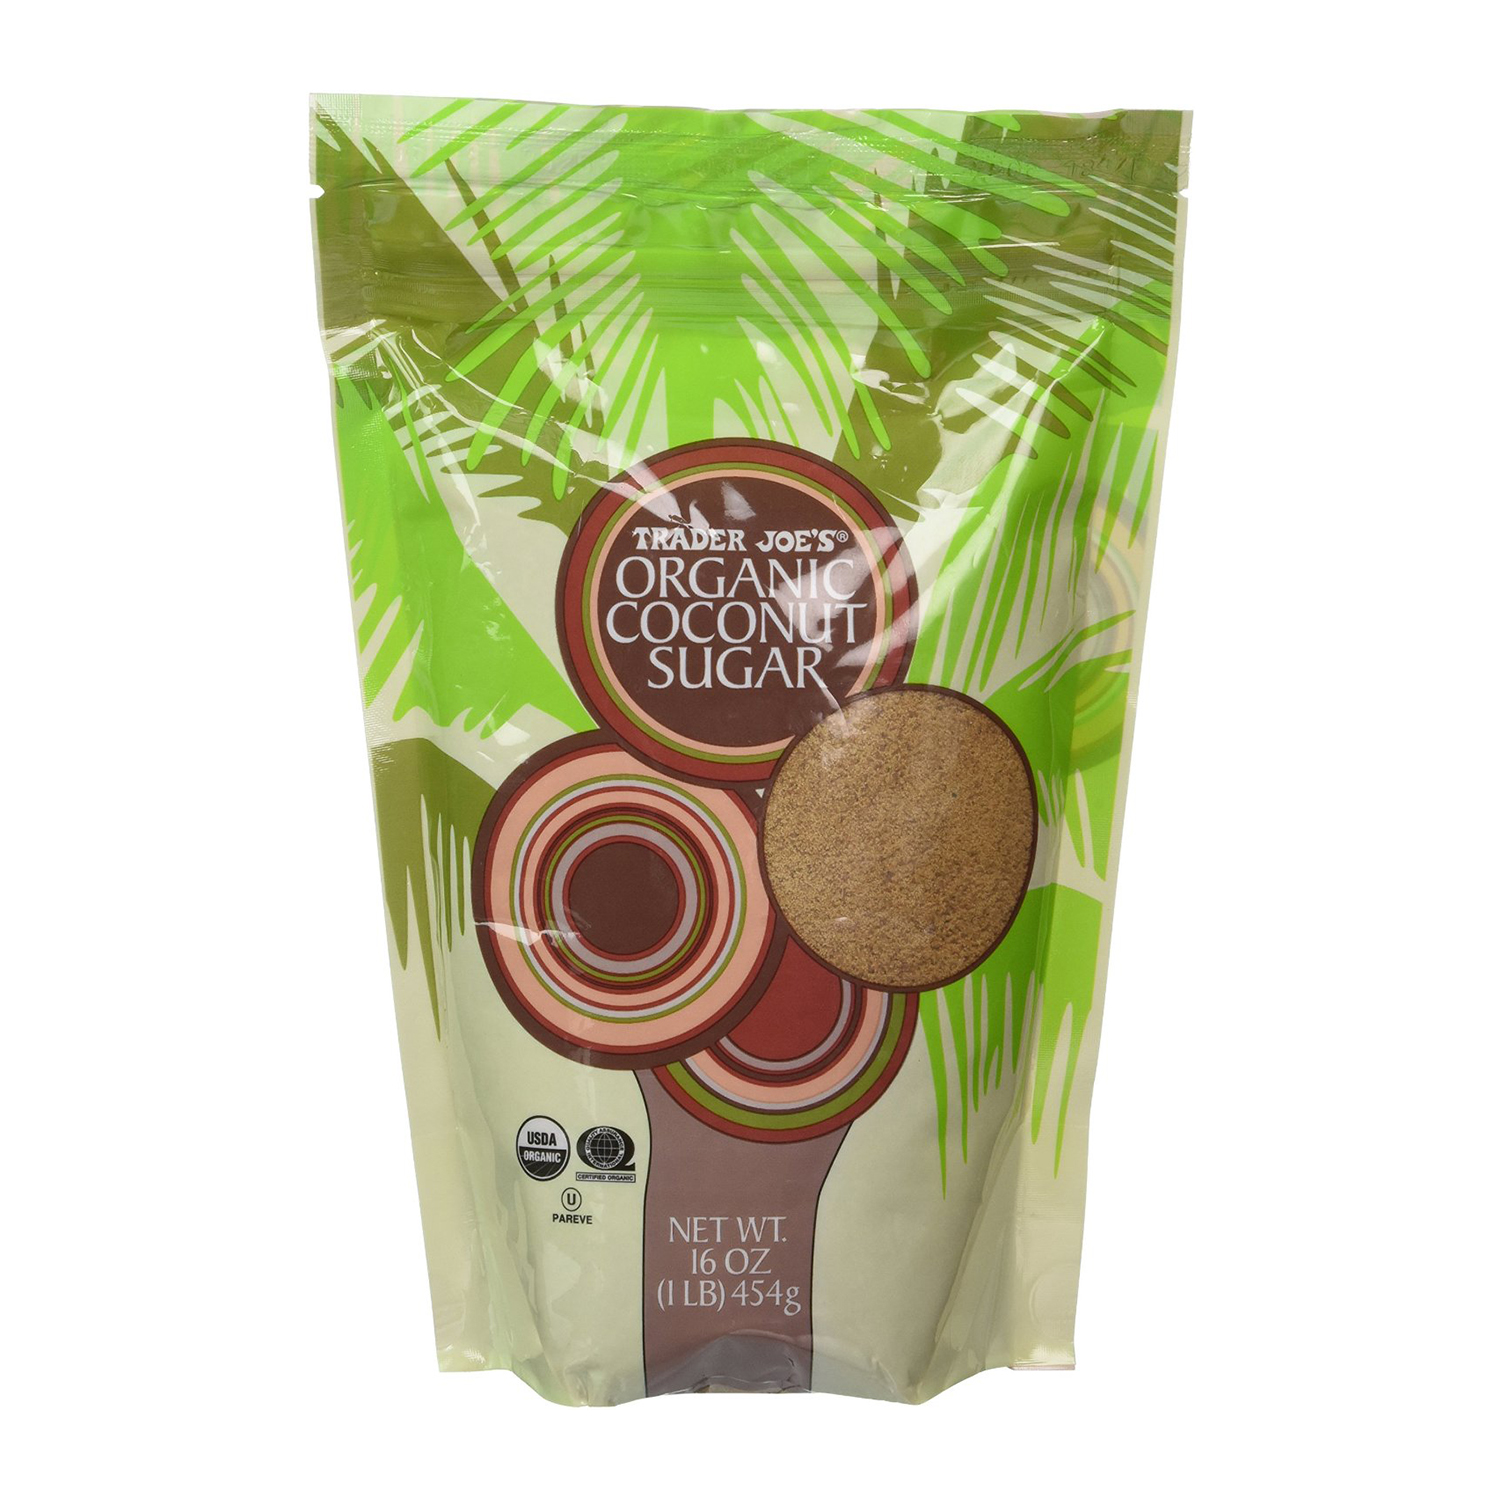 Our favorite brand of coconut sugar